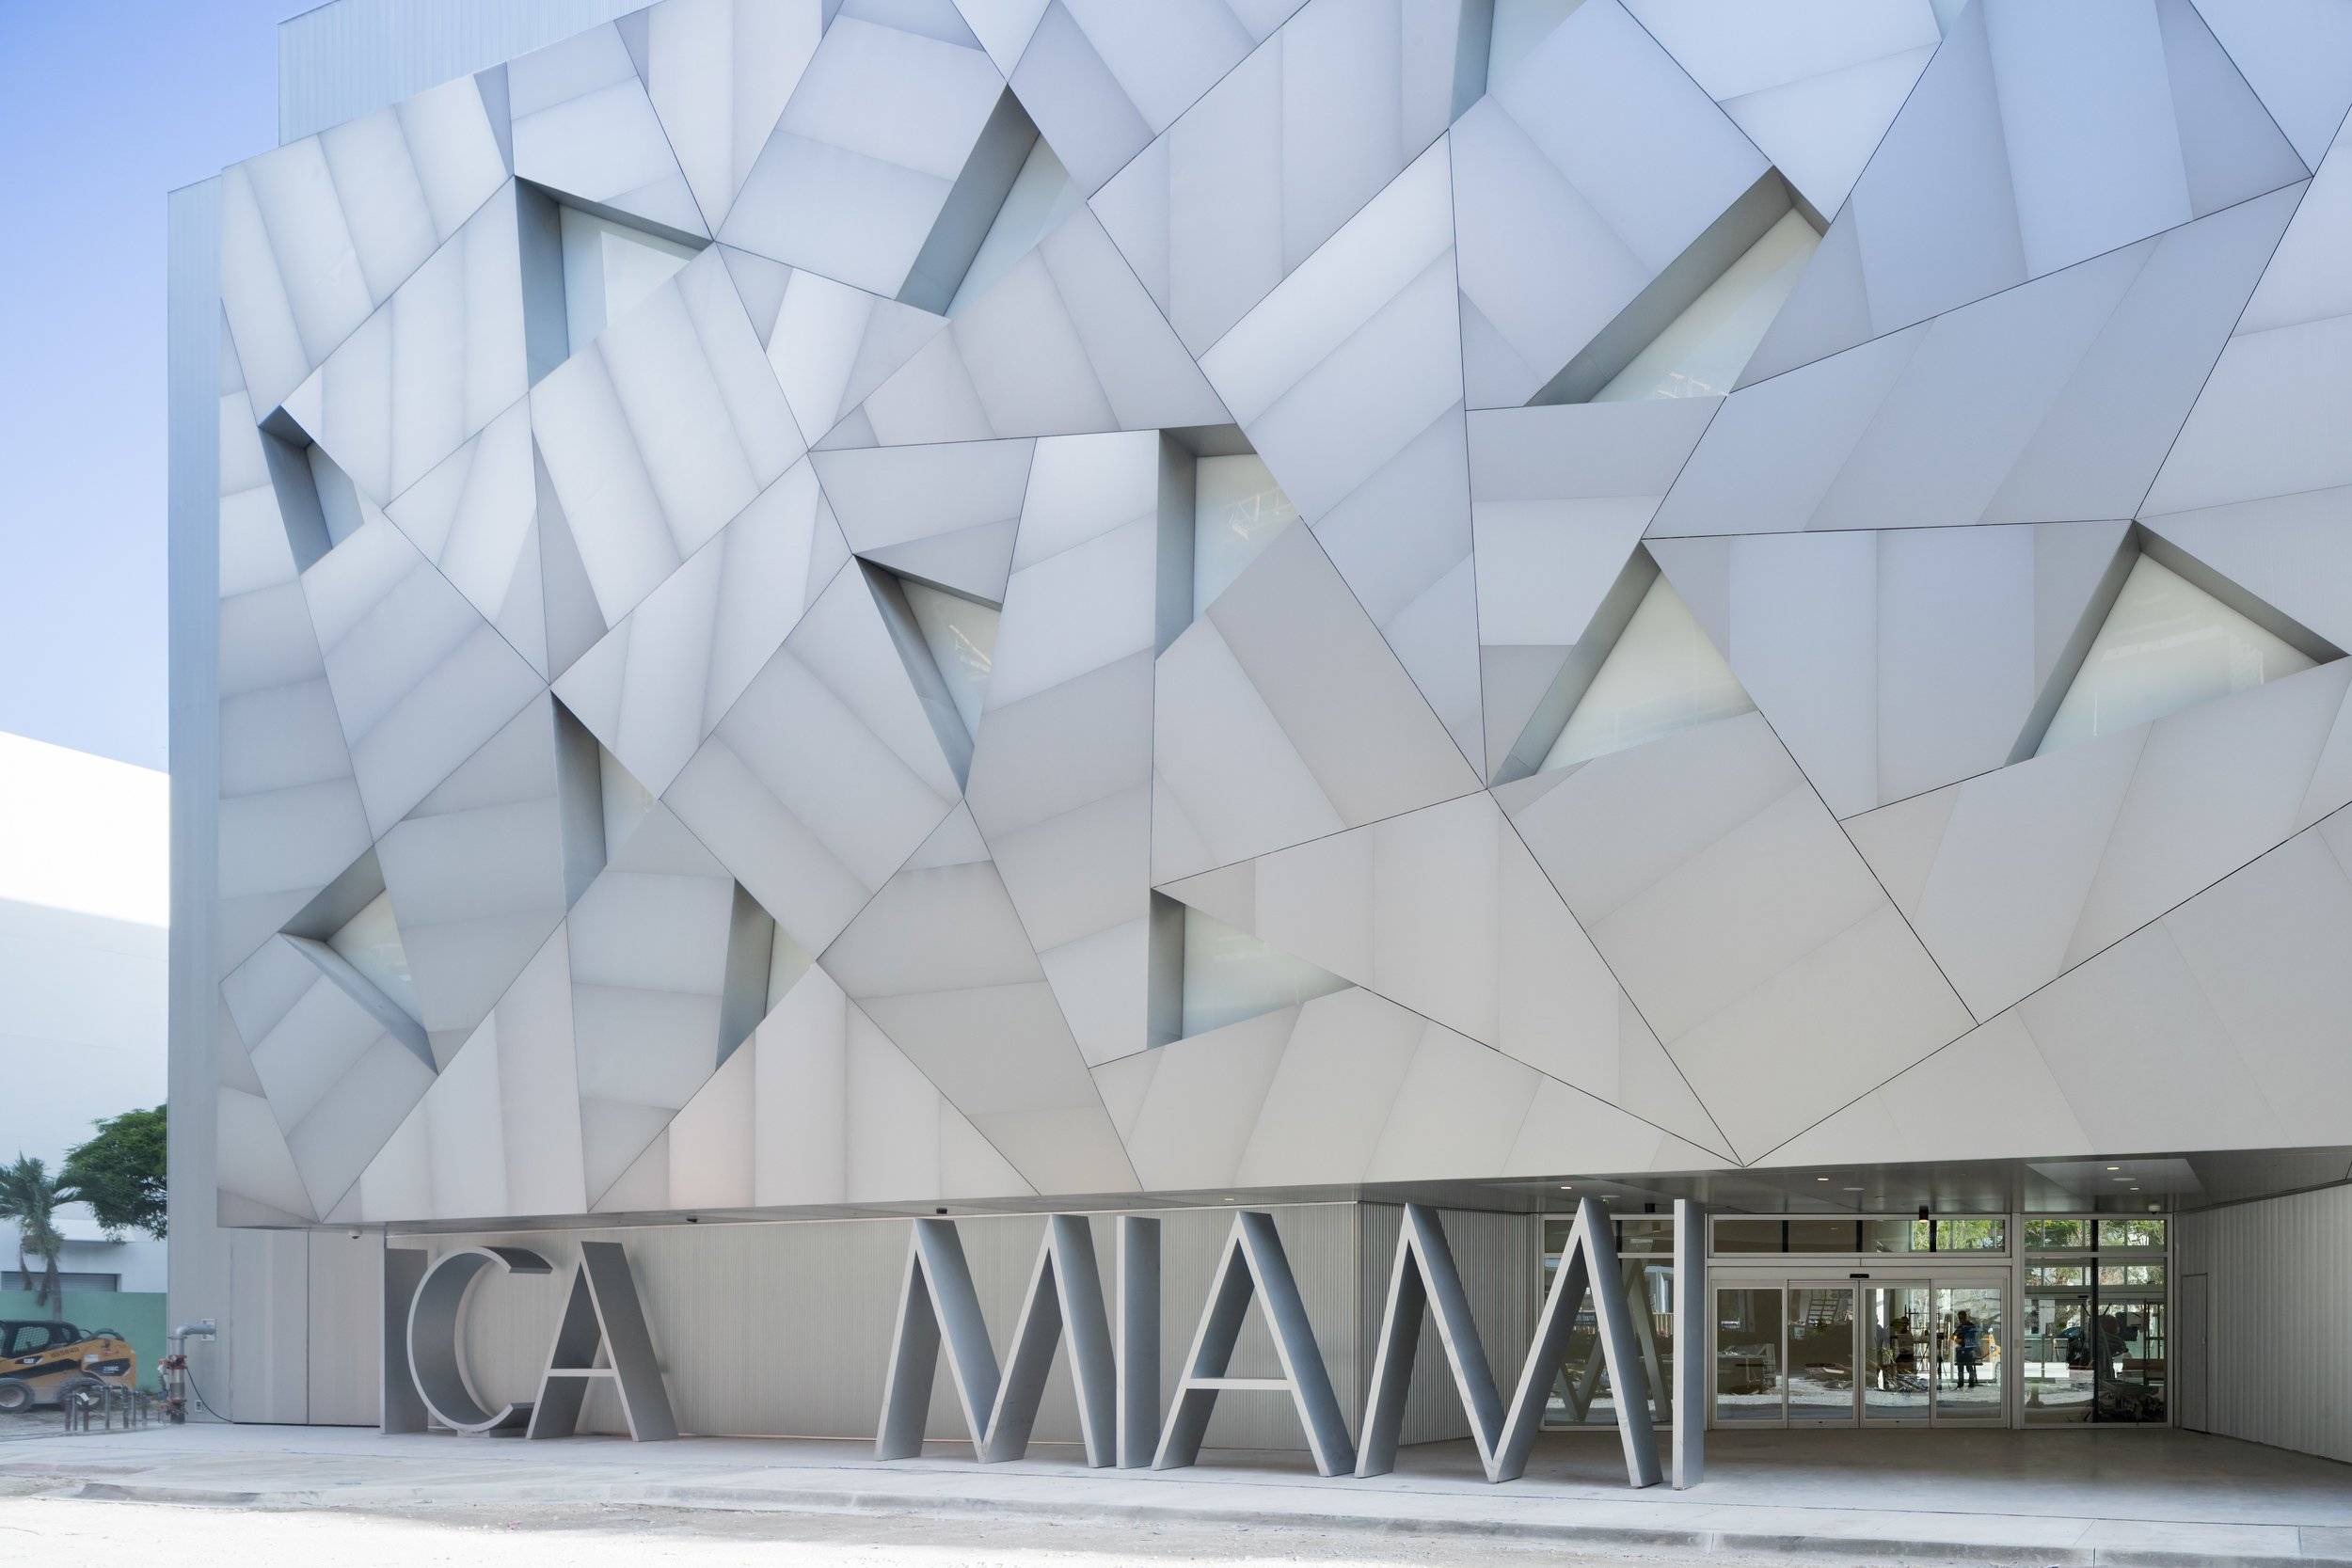 The newly opened Institute of Contemporary Arts Miami